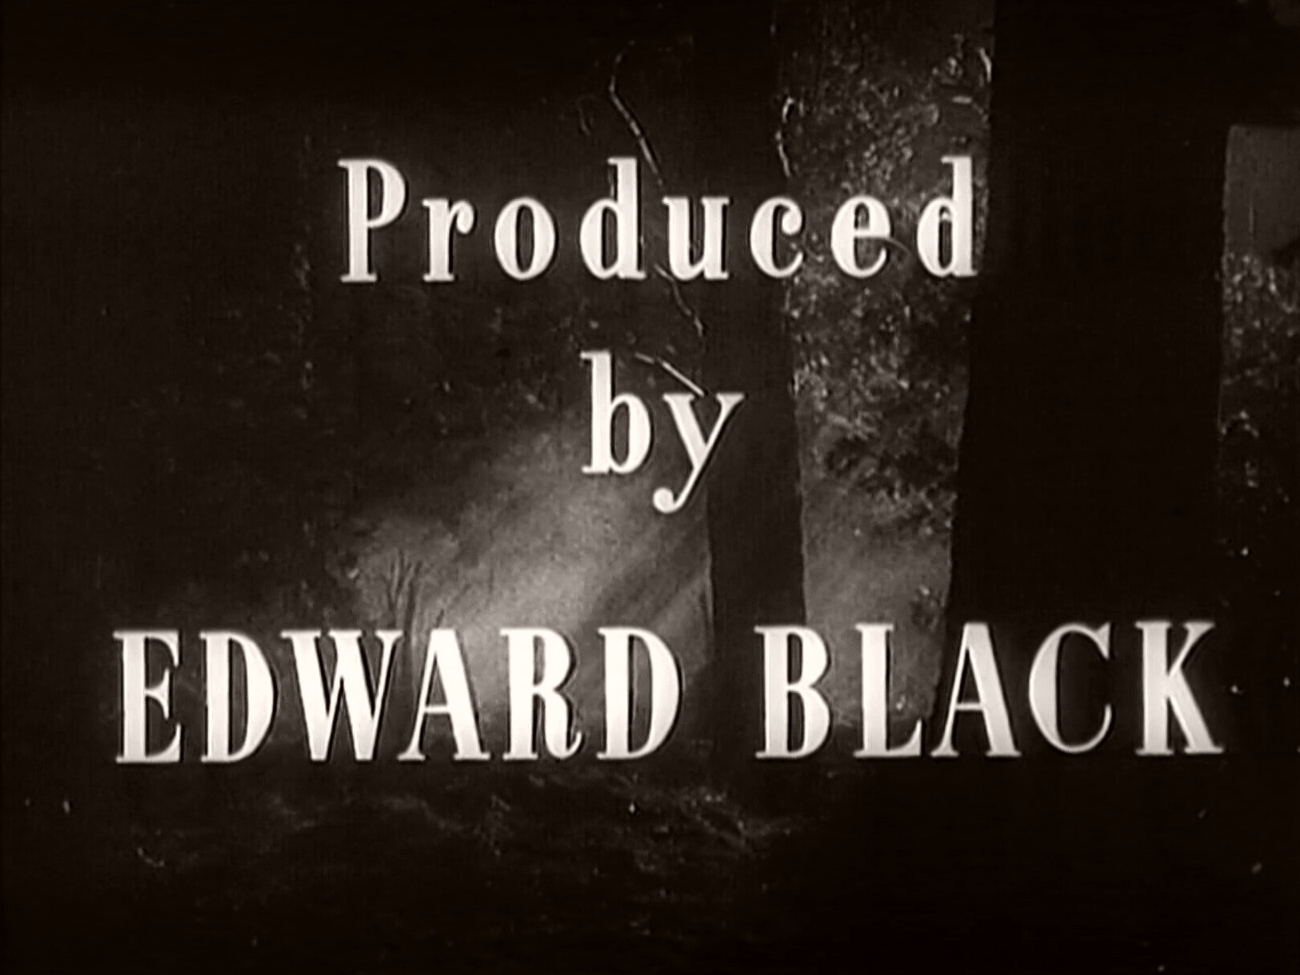 Main title from Two Thousand Women (1944) (7). Produced by Edward Black